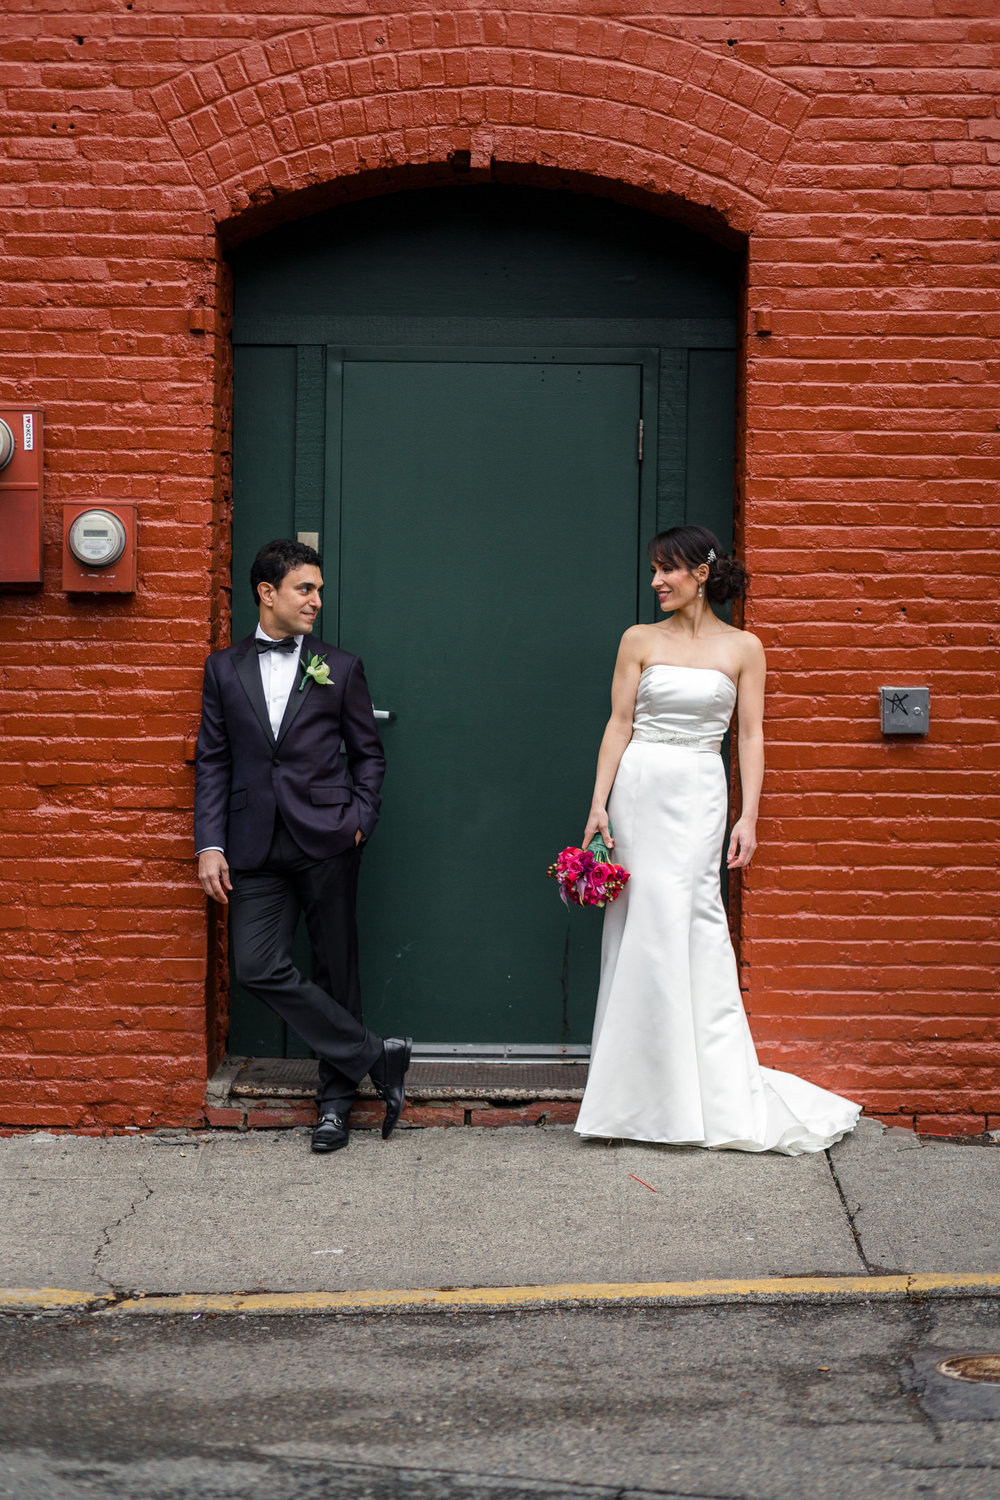 Documentary-Wedding-Photography-Andrew-Tat-Maria & AJ-08.jpg